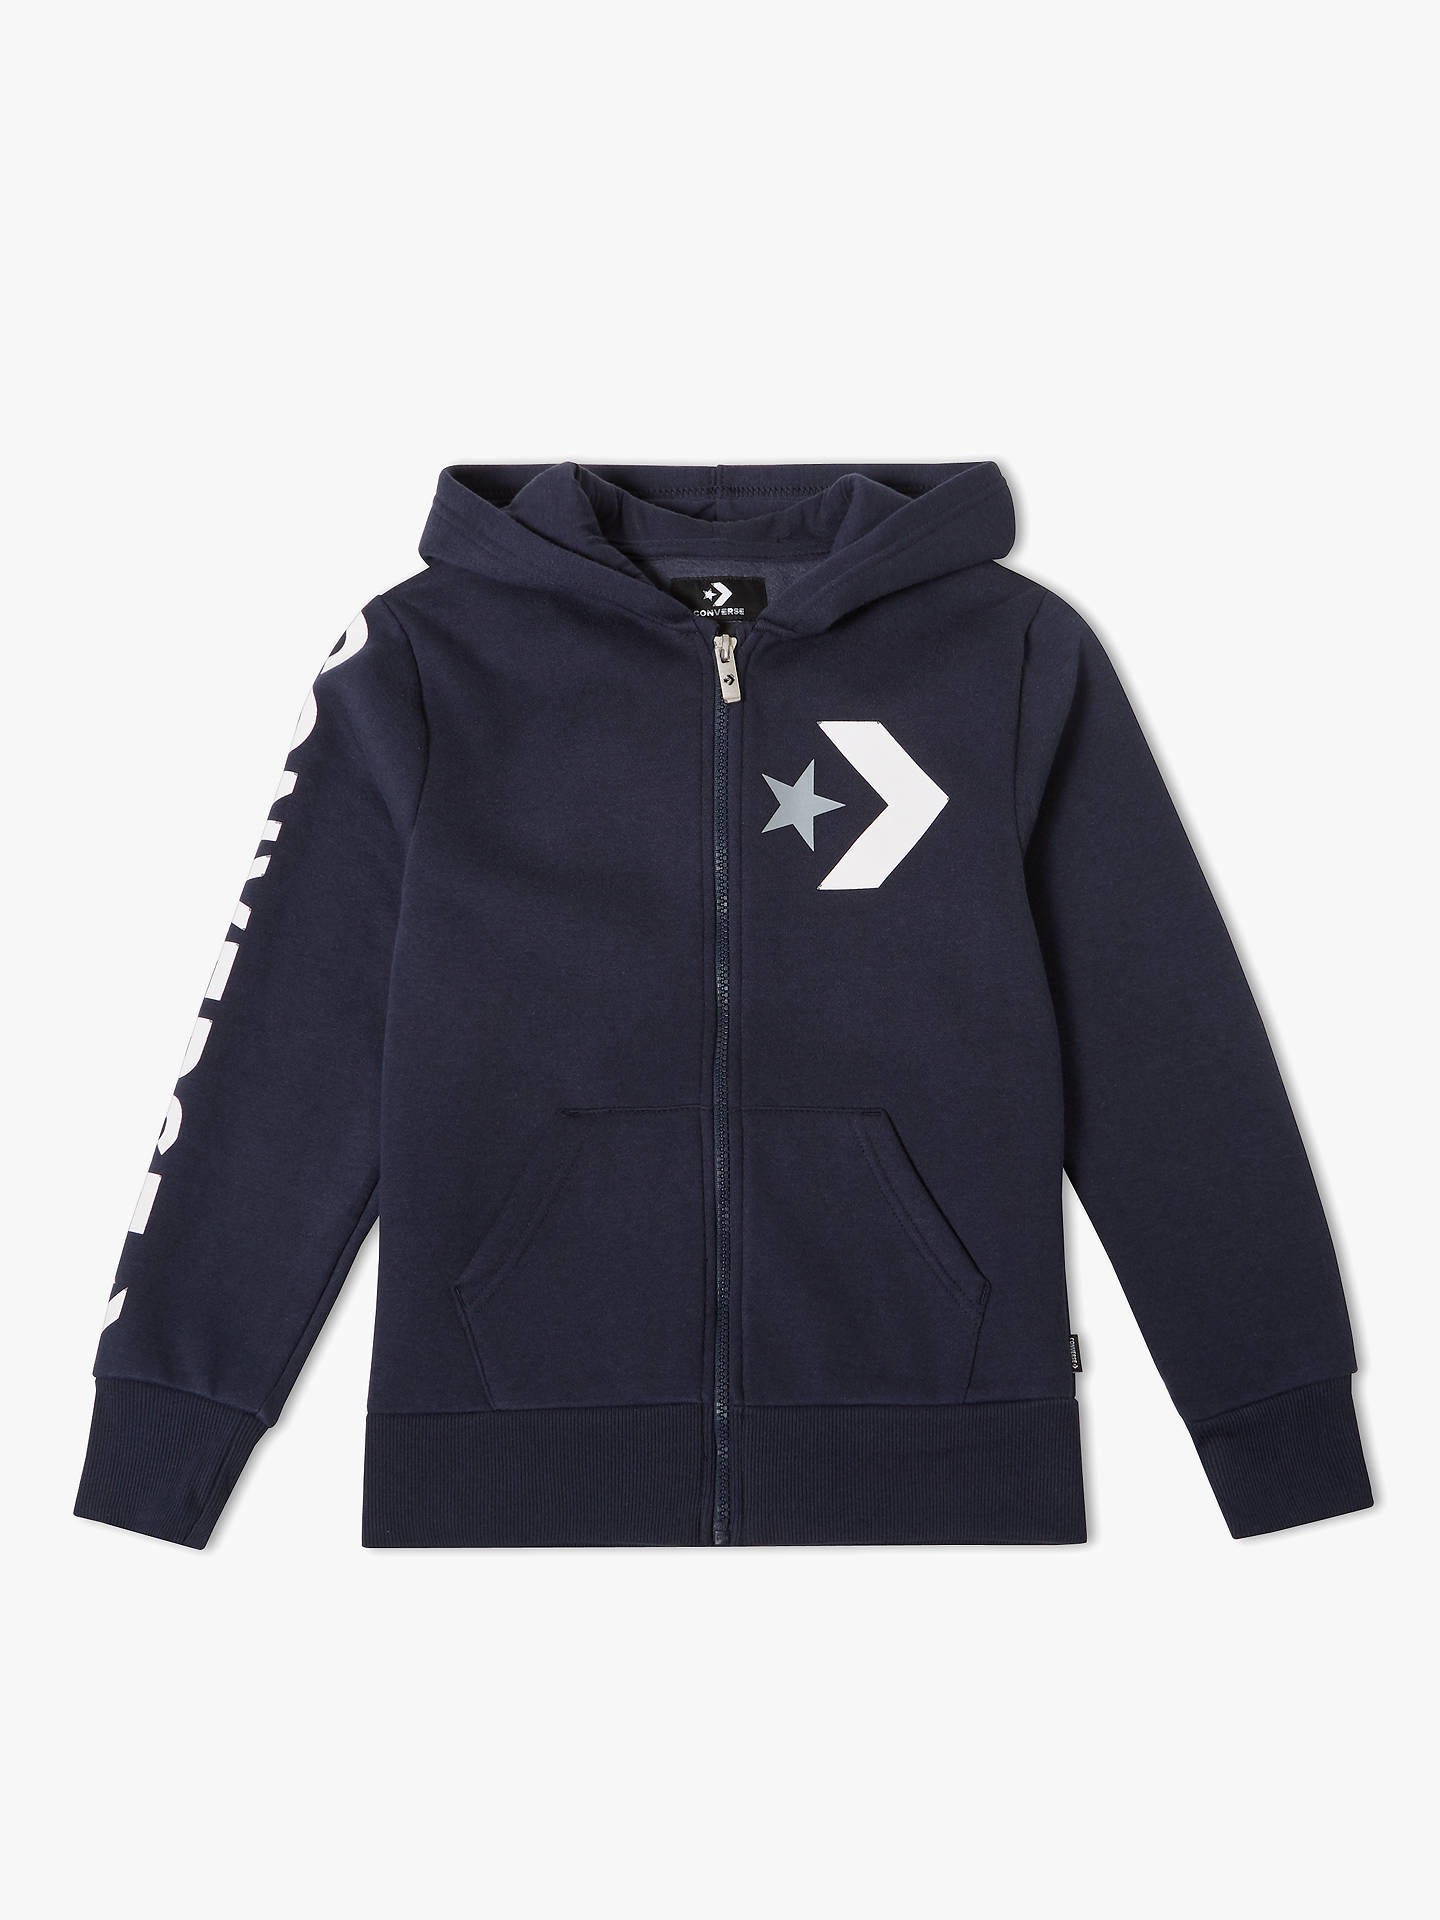 844ecf26bf0c Buy Converse Children s All Star Chevron Graphic Zip Hoodie